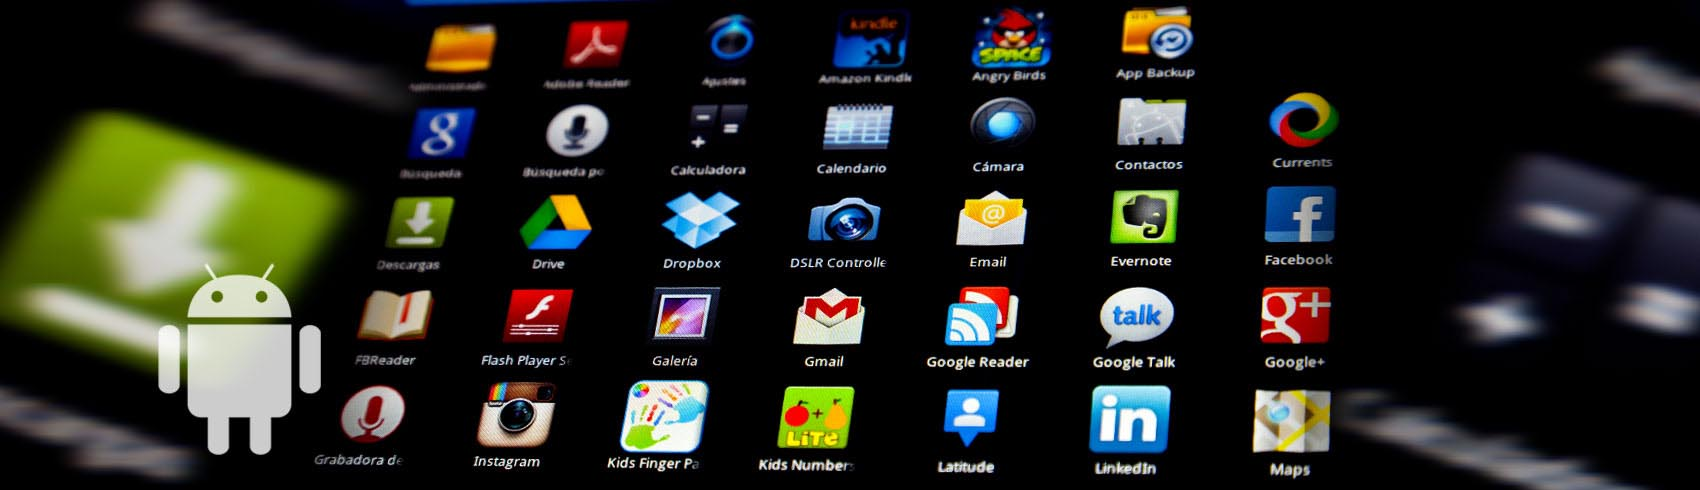 Why Develop an Android App for your Business? - Image 1